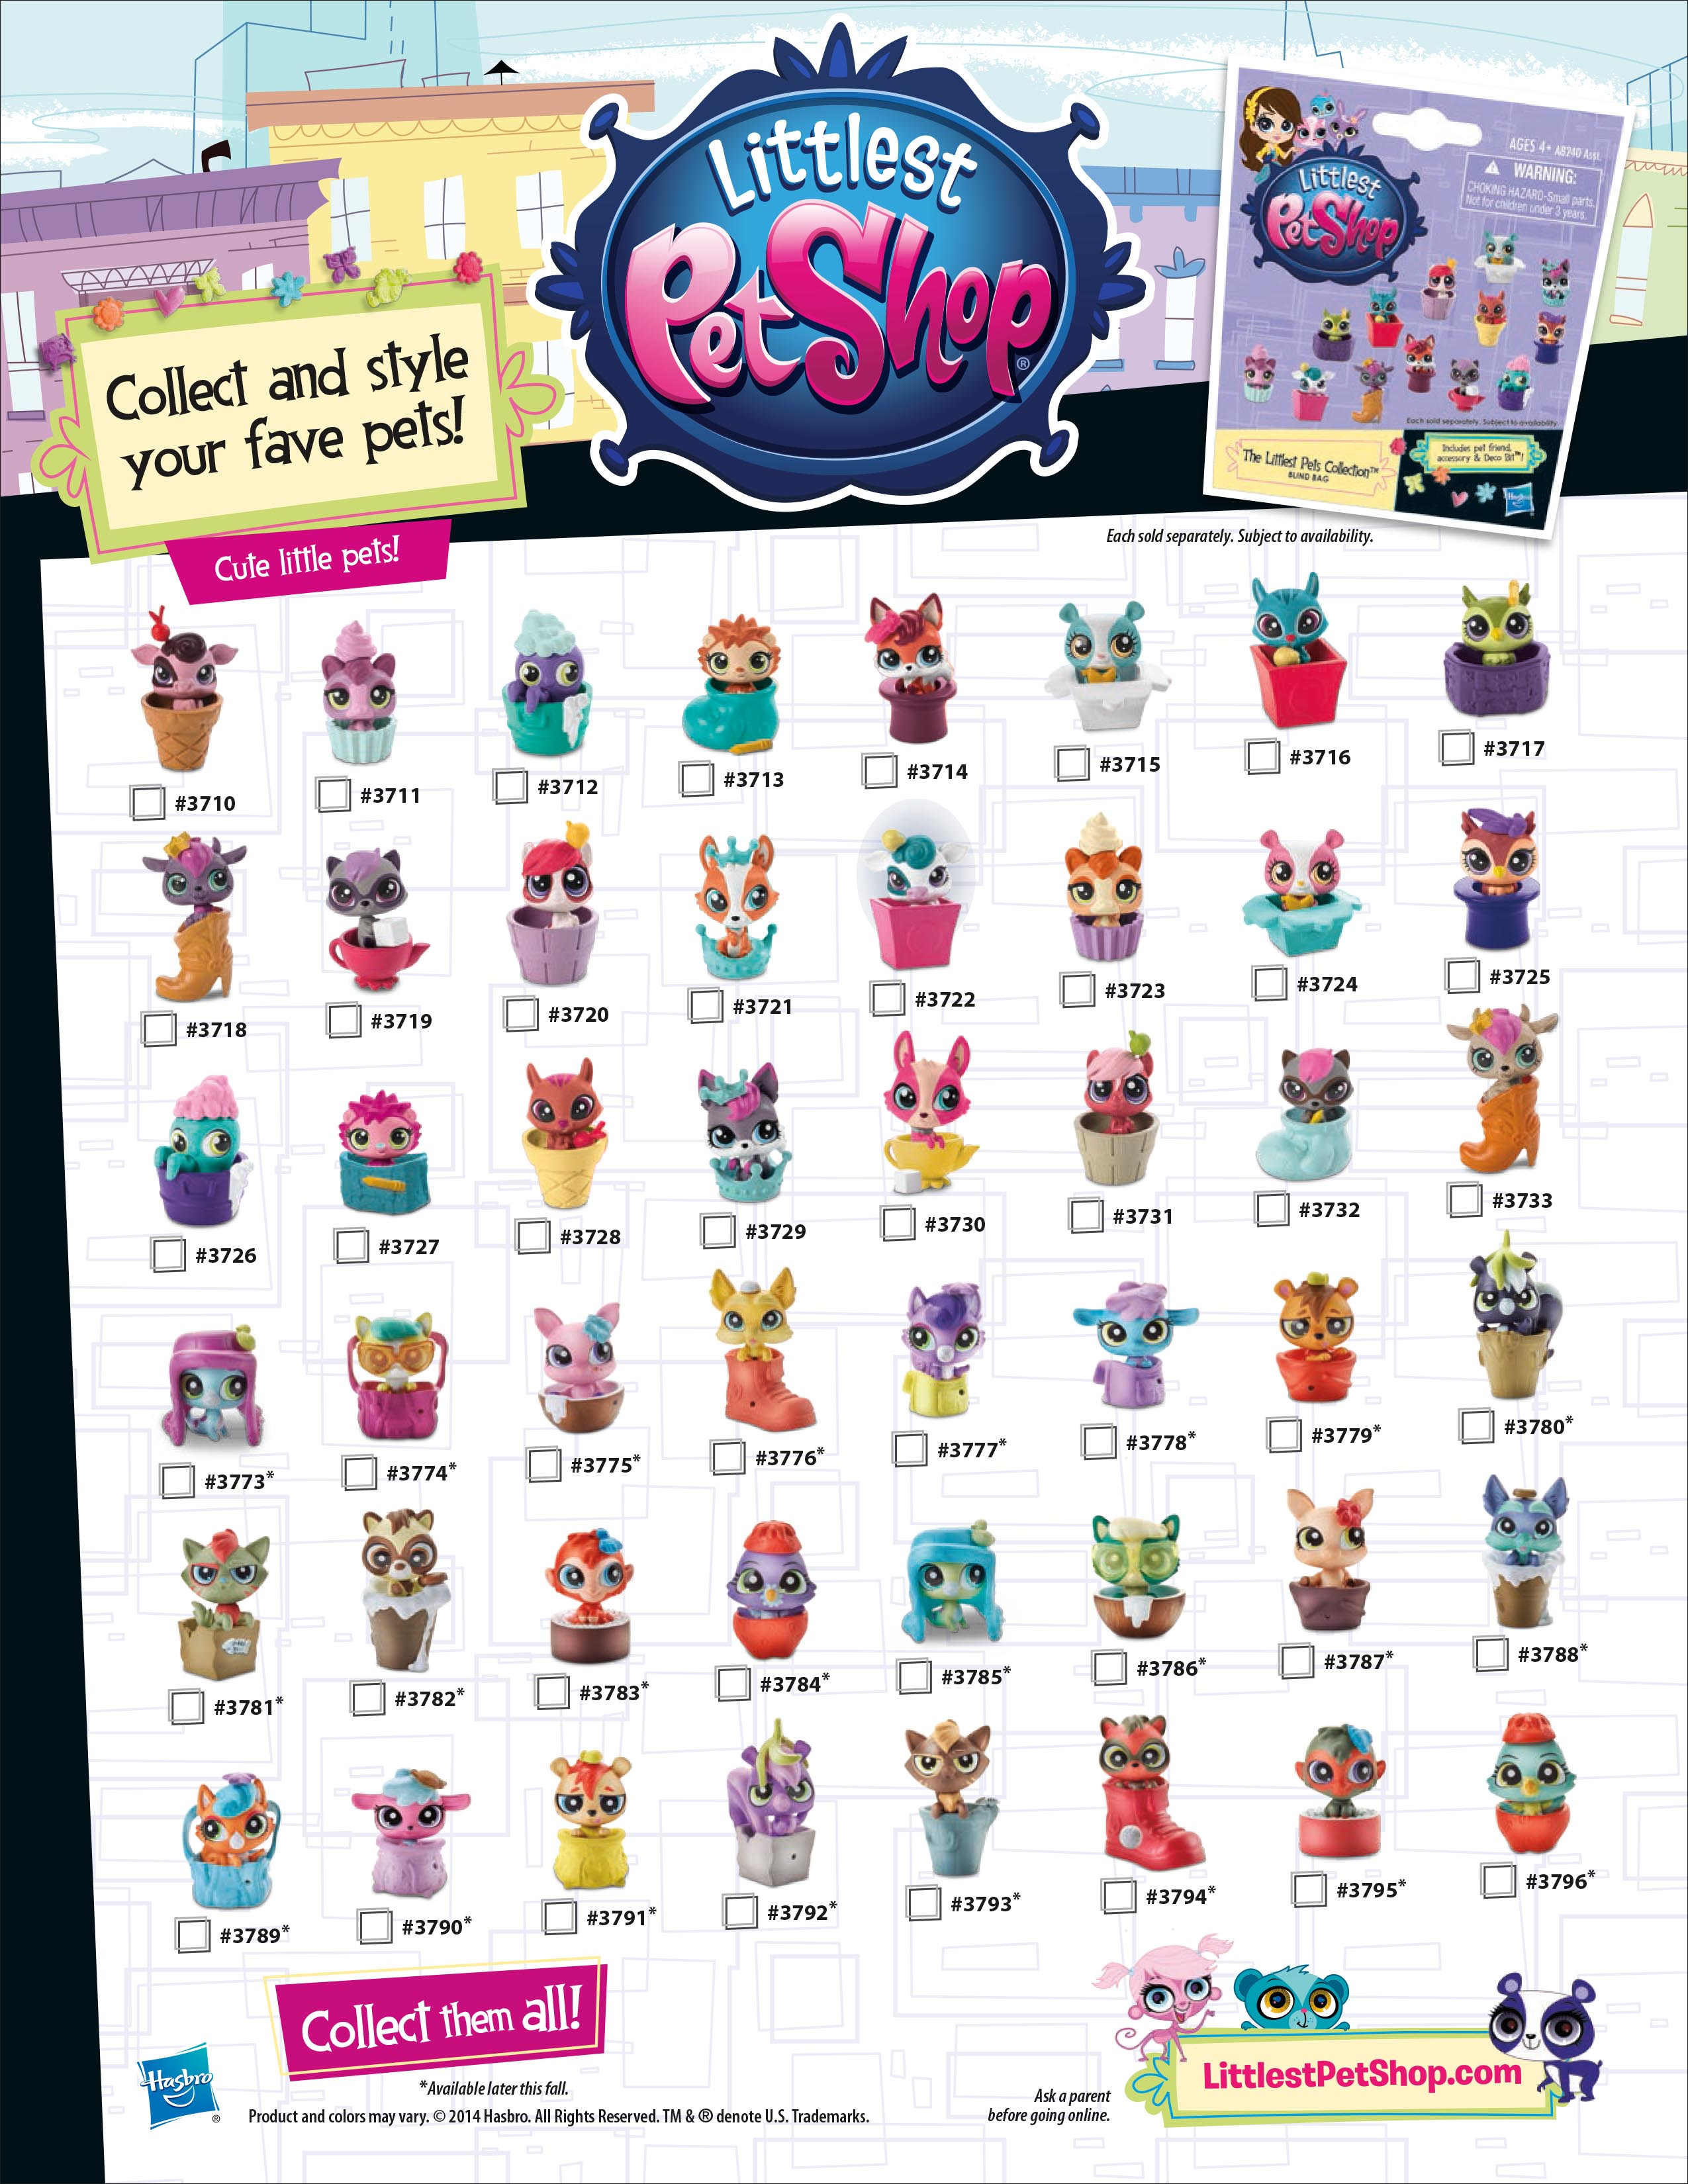 littlest-pet-shop-cute-little-pets-series-1-checklist-list – Kids Time